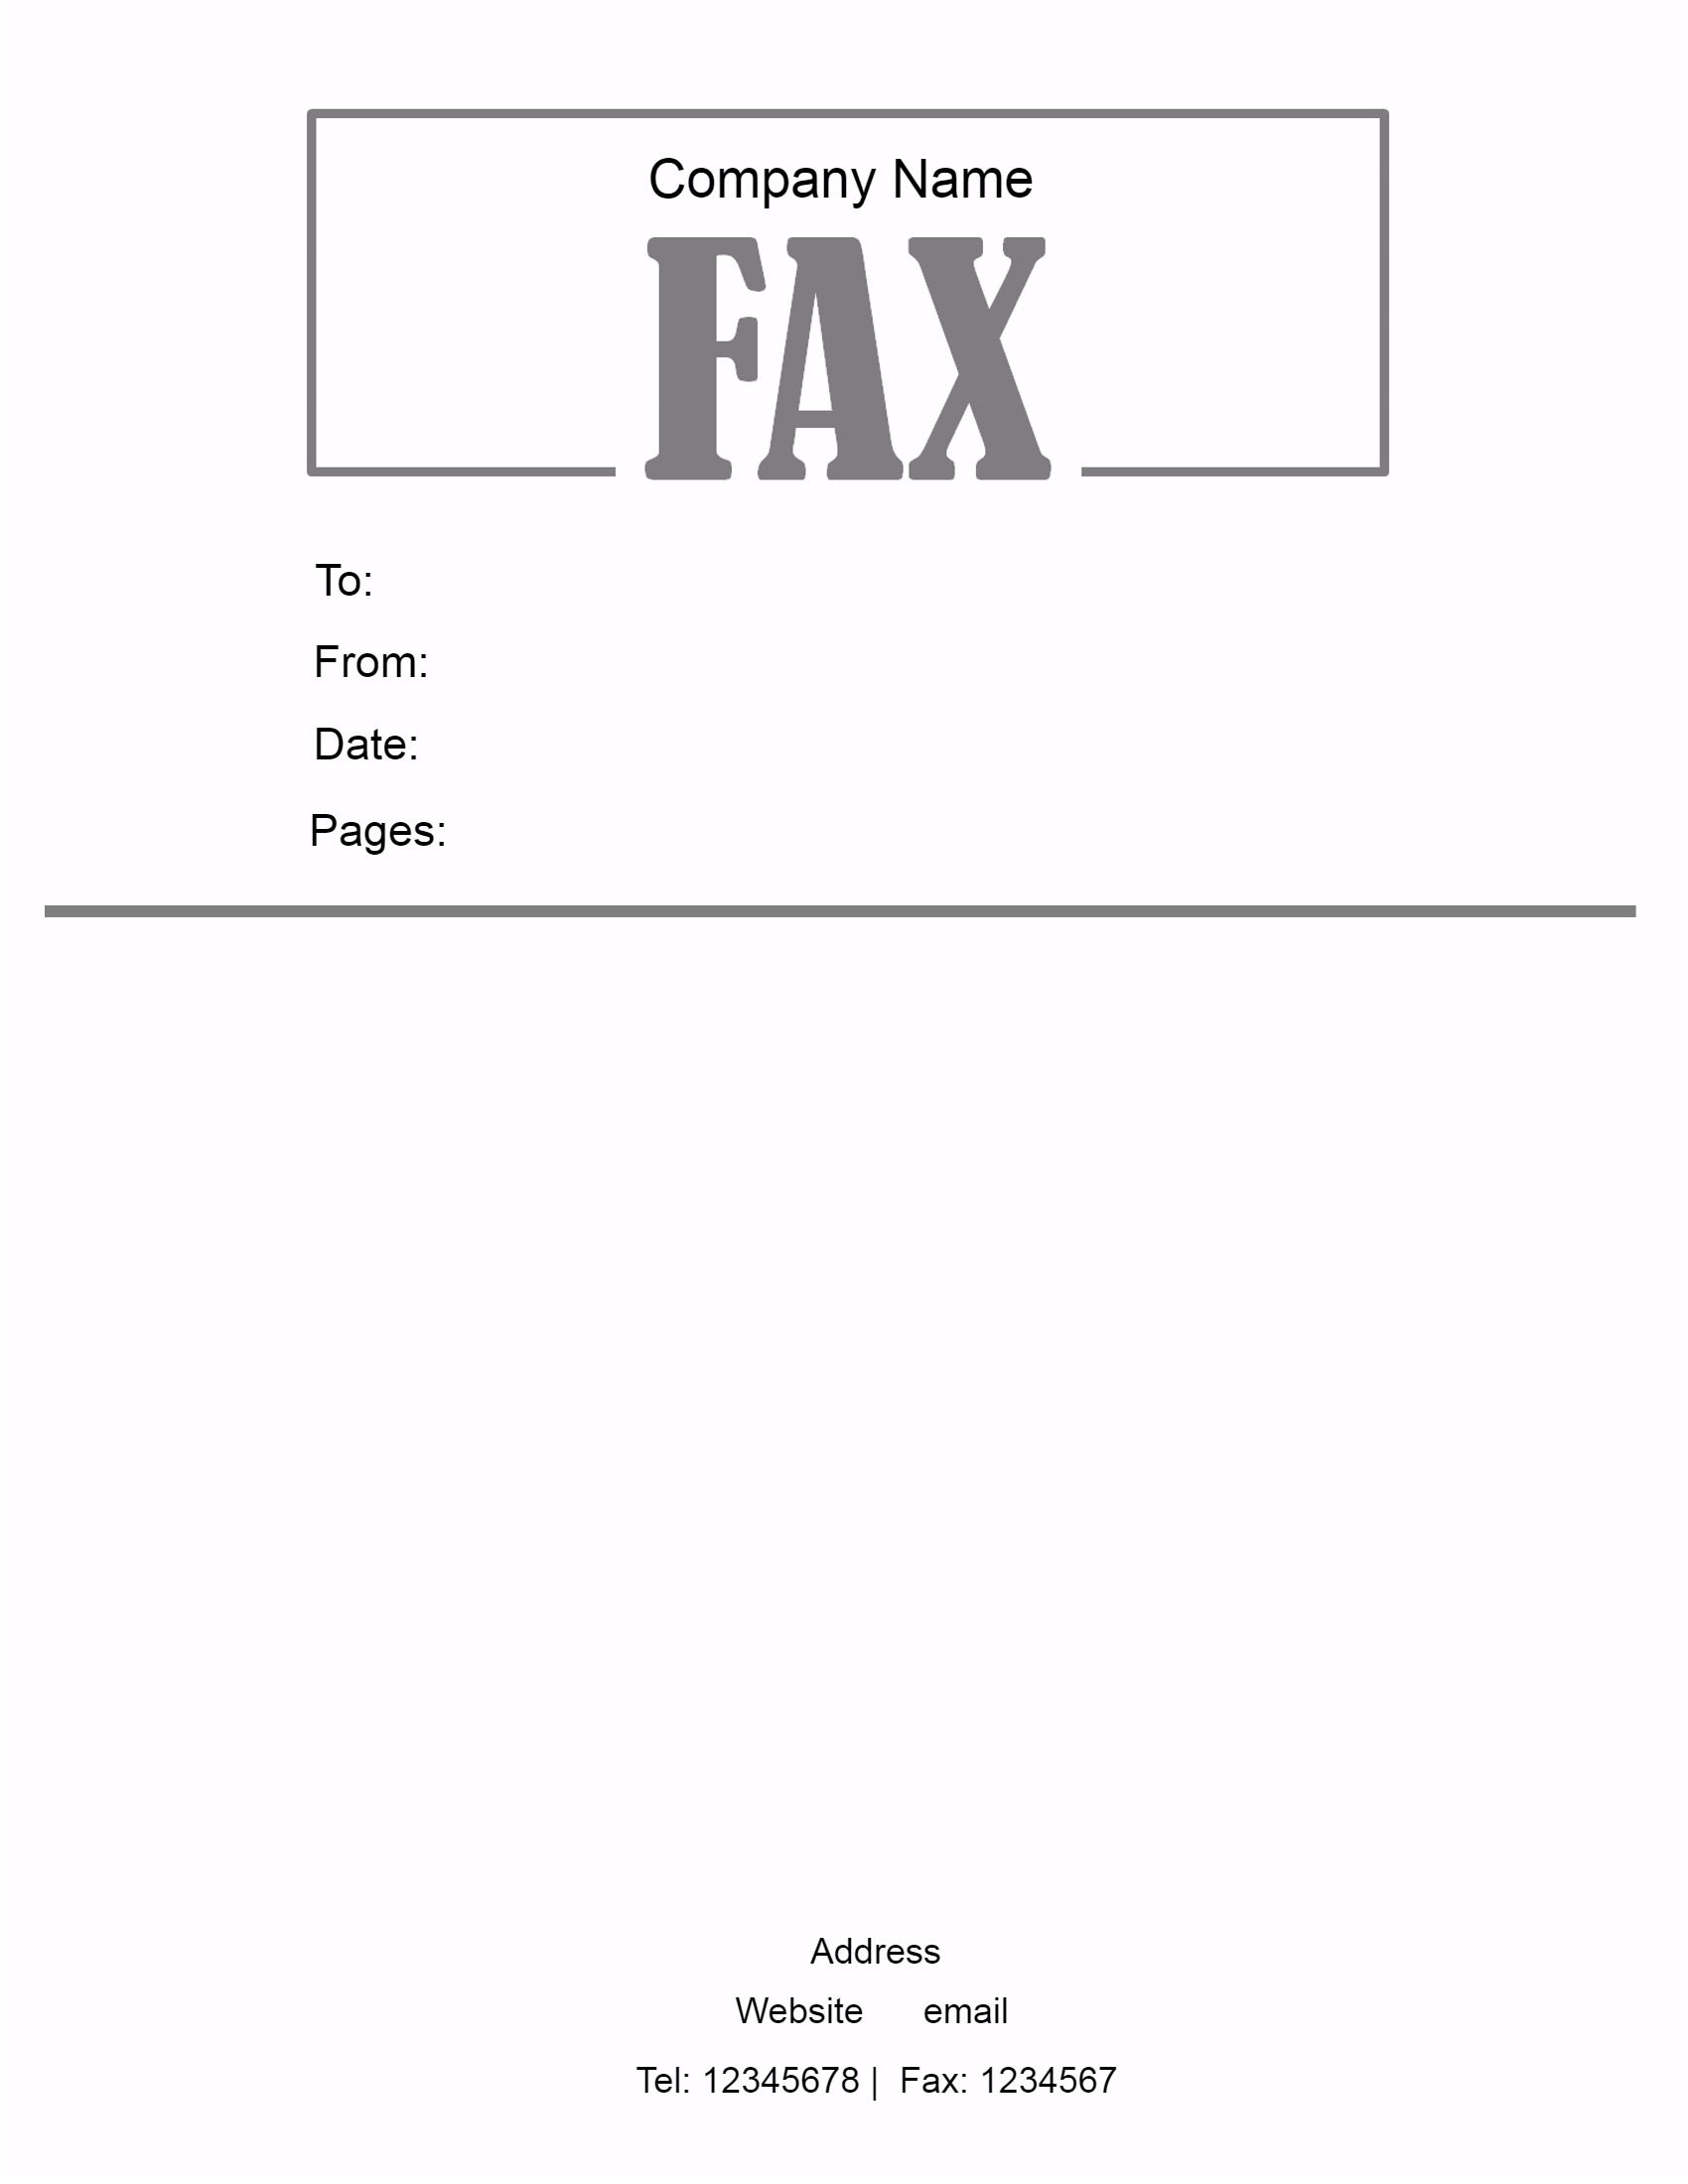 Doc432561 Free Fax Template Free Fax Cover Sheet Template – Free Fax Template